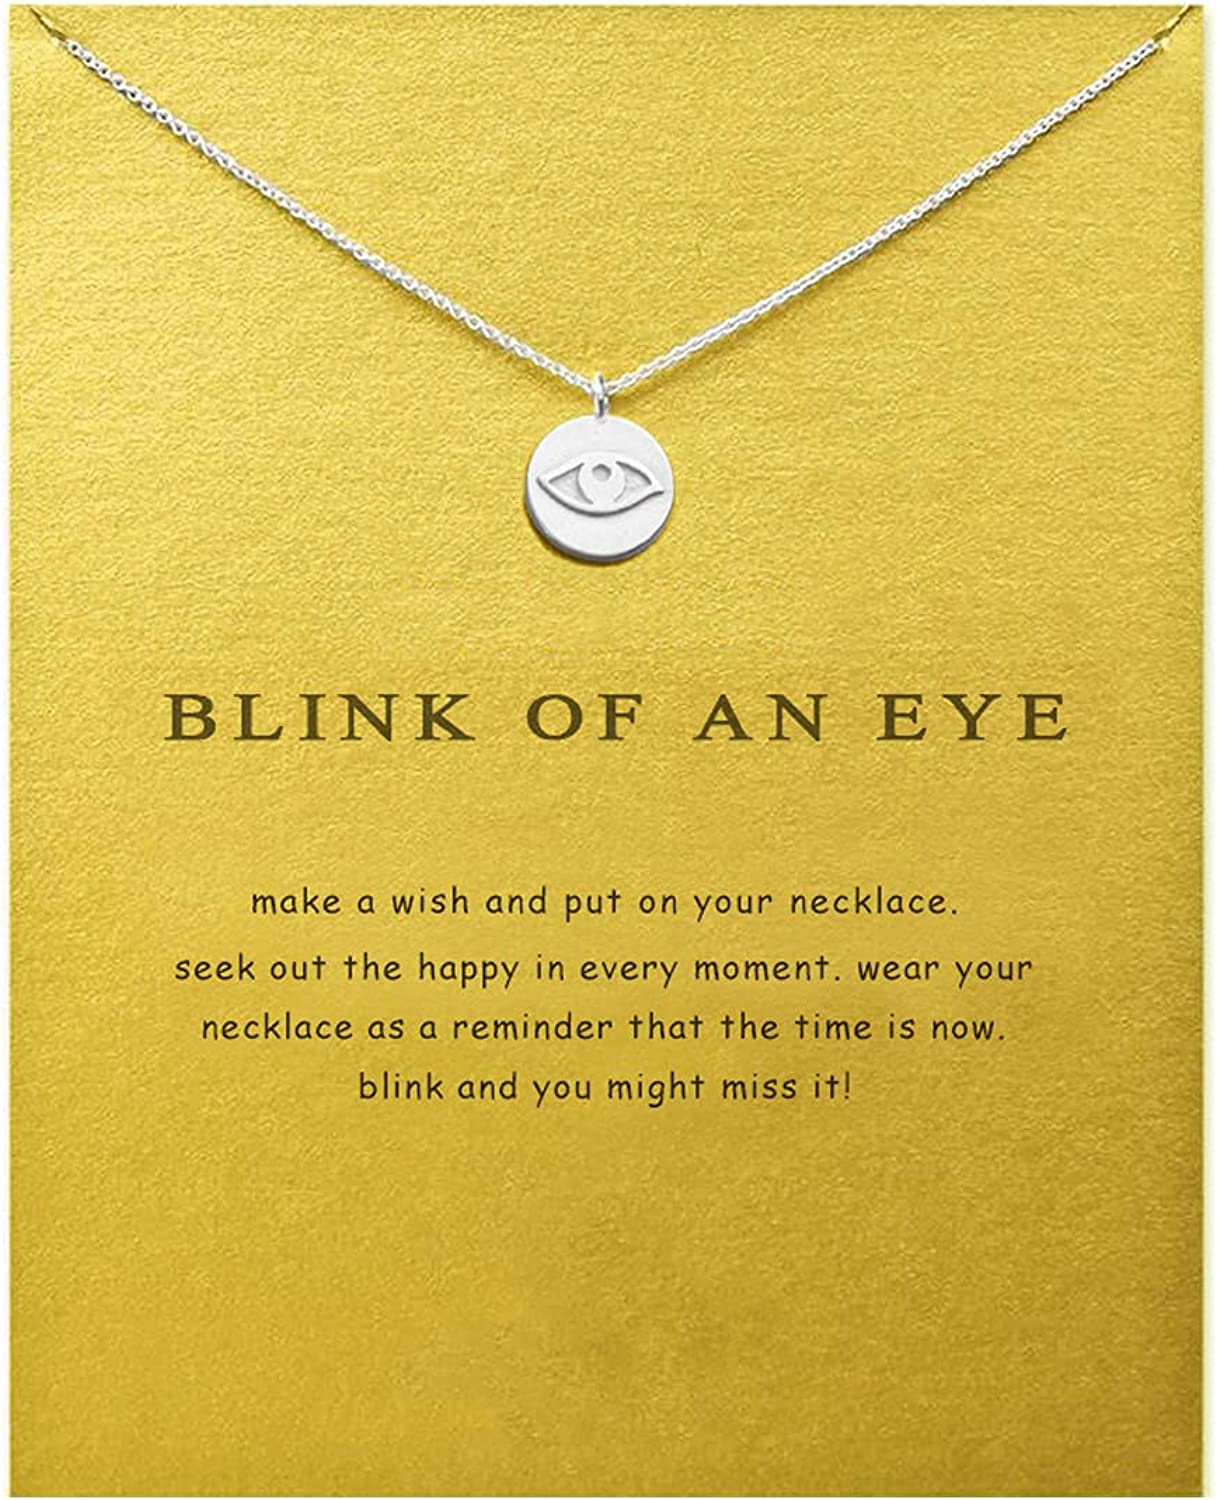 COLORFUL BLING Dainty Evil Eye Necklace with Message Wish Card Hamsa Fatima Hand Pendant Chain Necklace Good Luck Friendship Jewelry for Women Girls